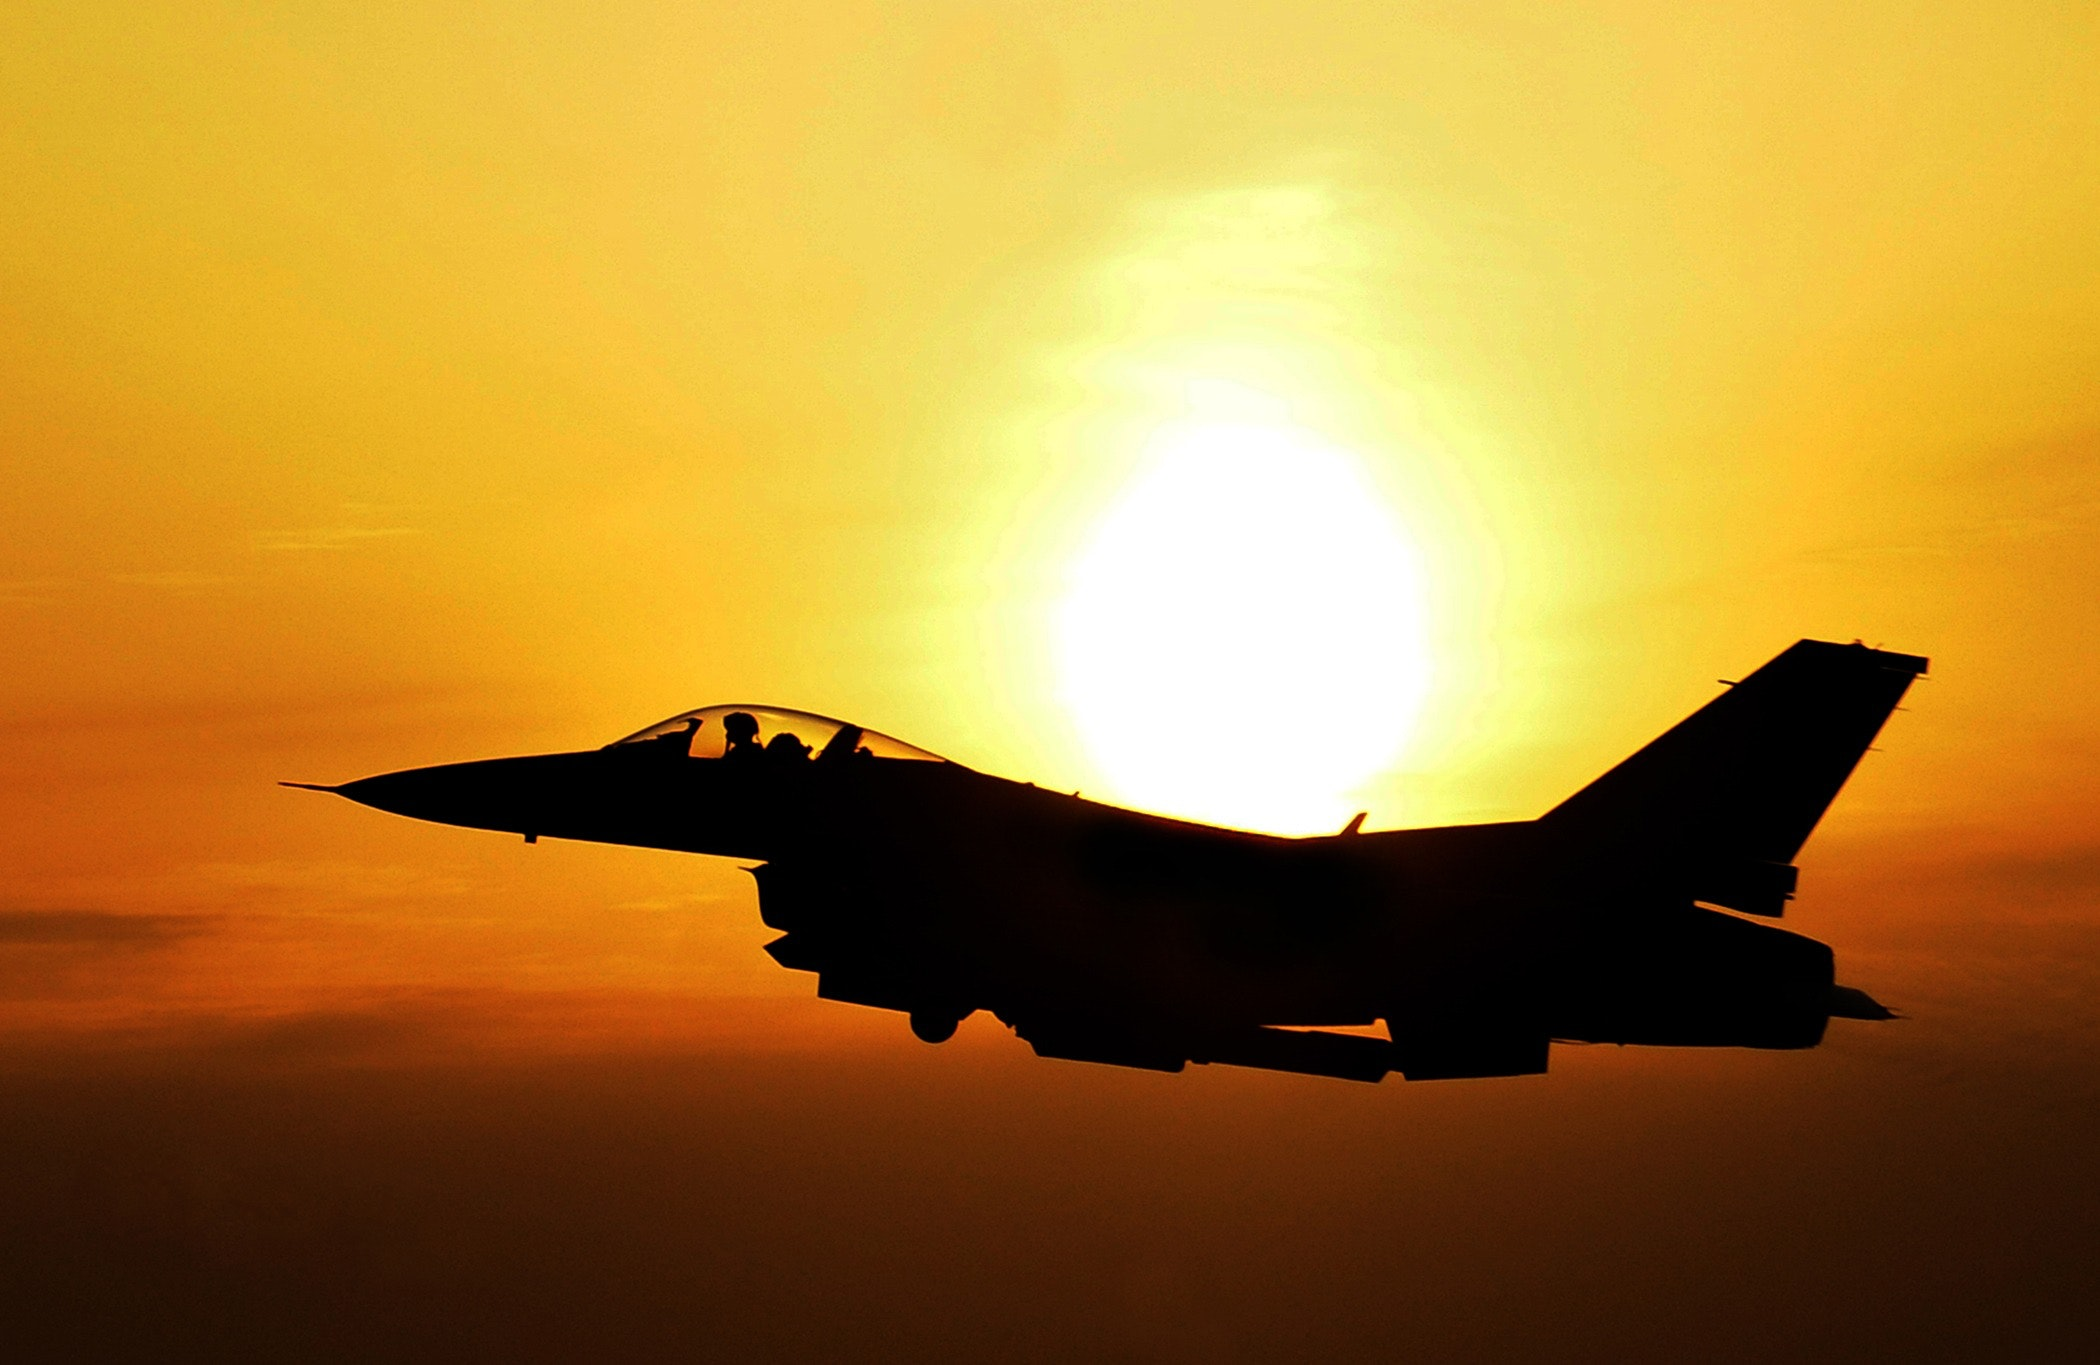 Air Craft during Day Time, Aeroplane, Aircraft, Aviation, Fighter jet, HQ Photo